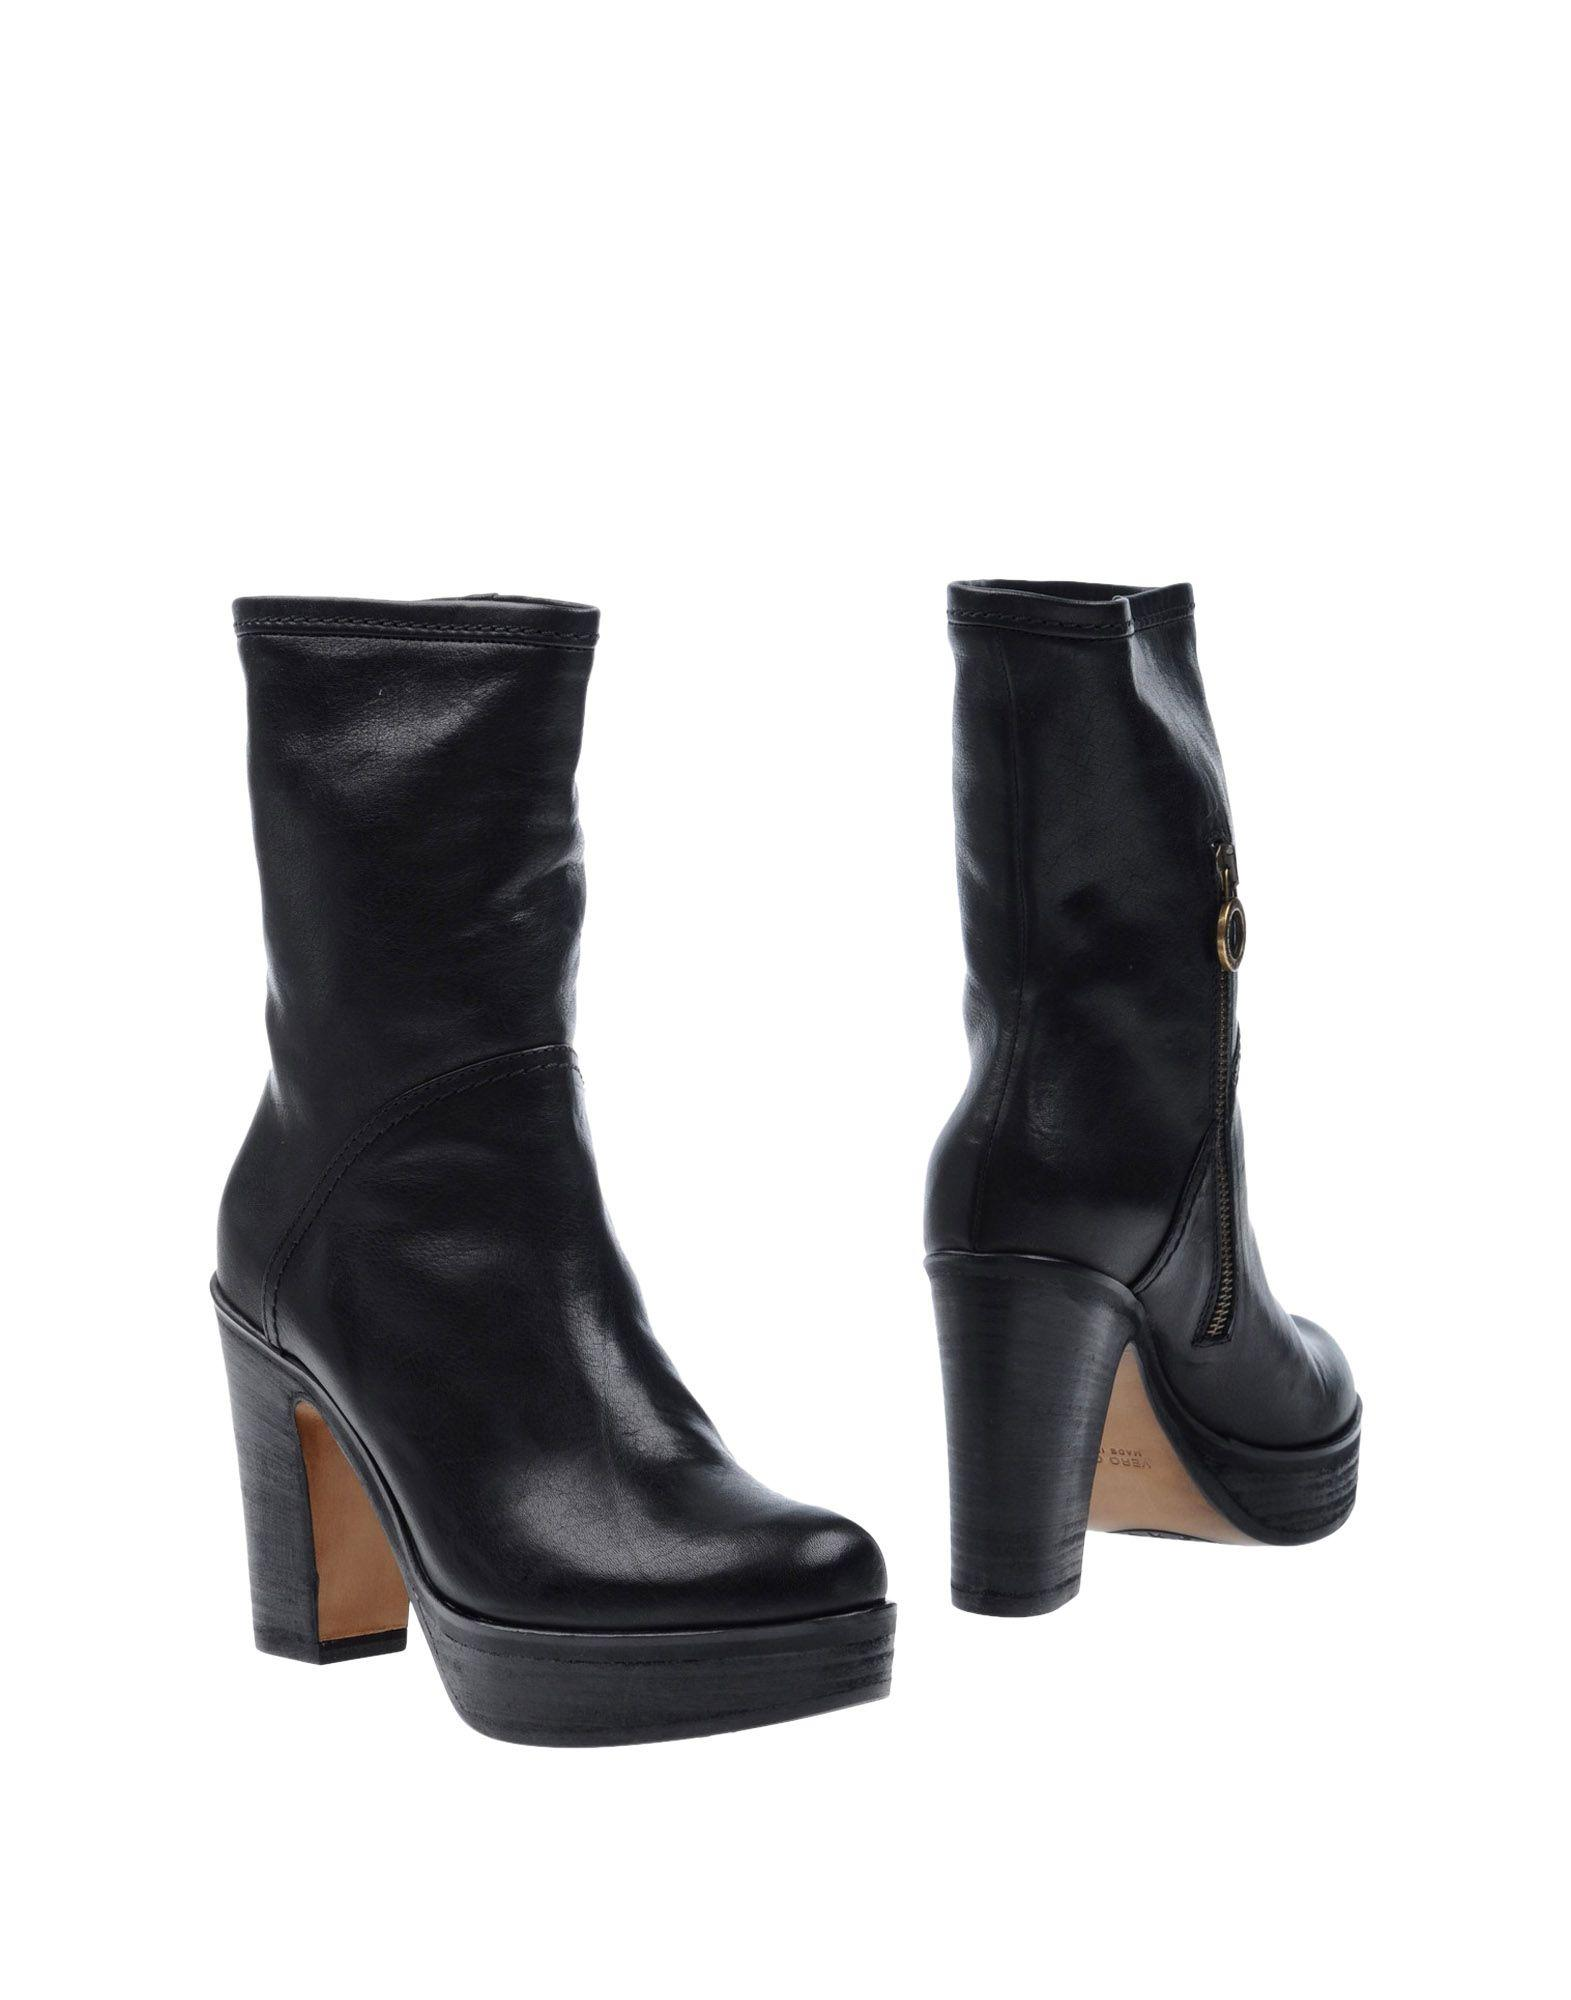 Fiorentini + Baker Ankle Boot In Black